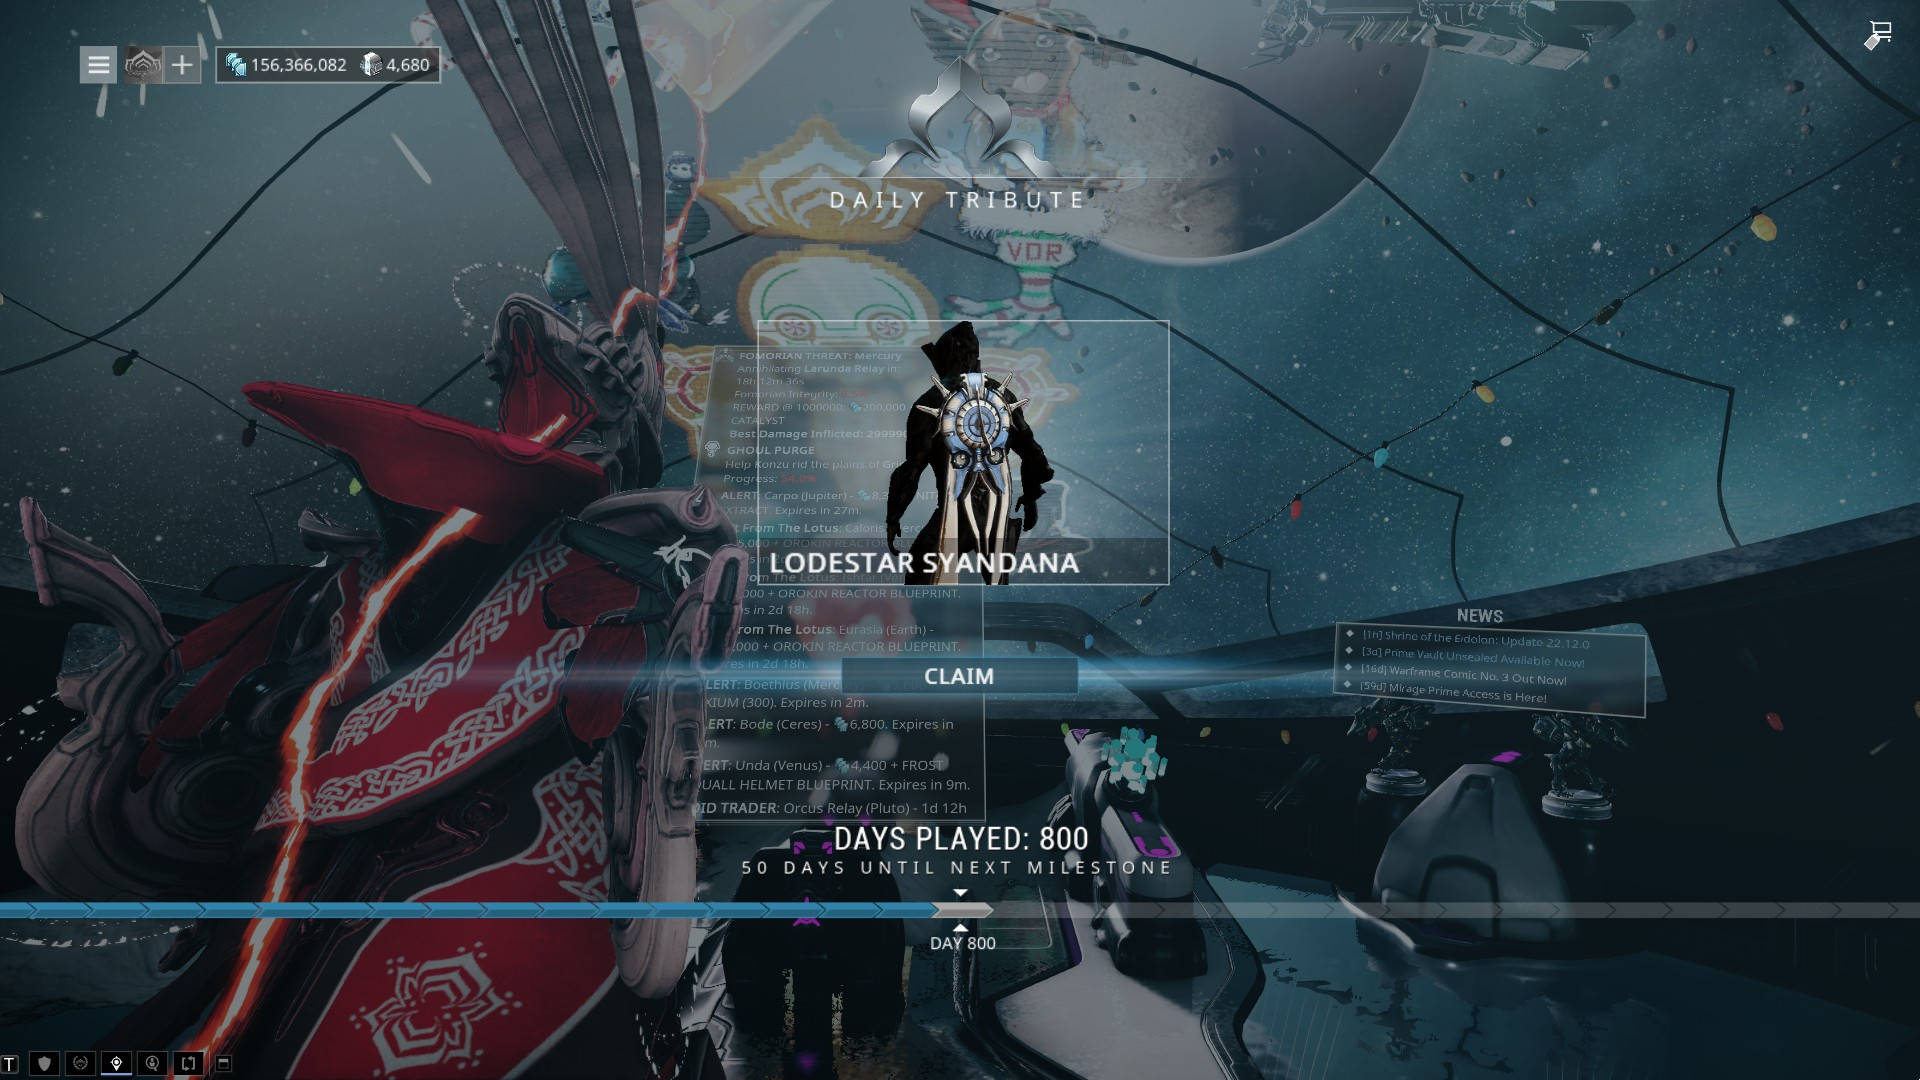 Warframe xii games forum toot malvernweather Image collections